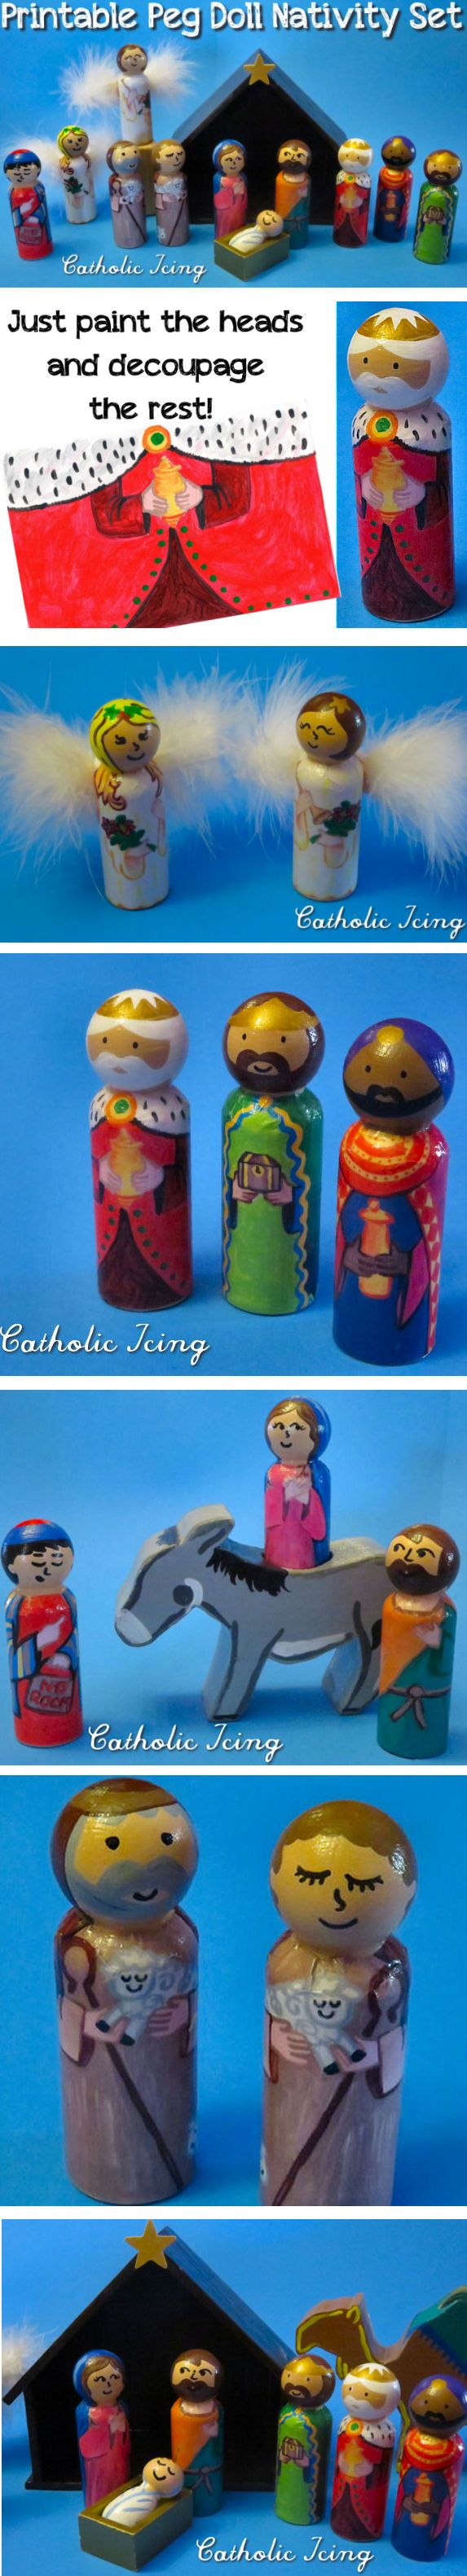 Peg doll nativity set- this one is printable! You just paint the heads and decoupage the rest. What an easy way to make an heirloom gift for your kids this Christmas! This set comes with Mary, Joseph, 3 Wise men, 2 Shepherds, and 2 Angels and the Inn Keeper, and the download is so affordable!